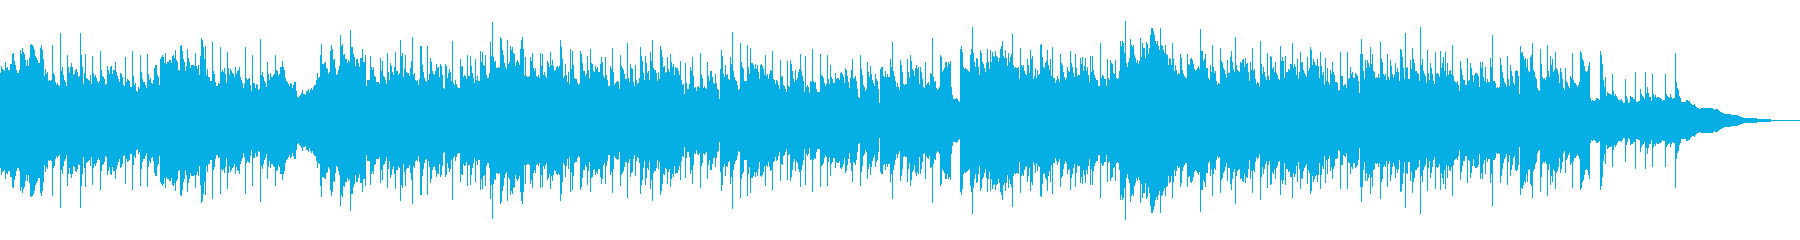 Opening, cheering, four-on-the-floor, blue sky's reproduced waveform